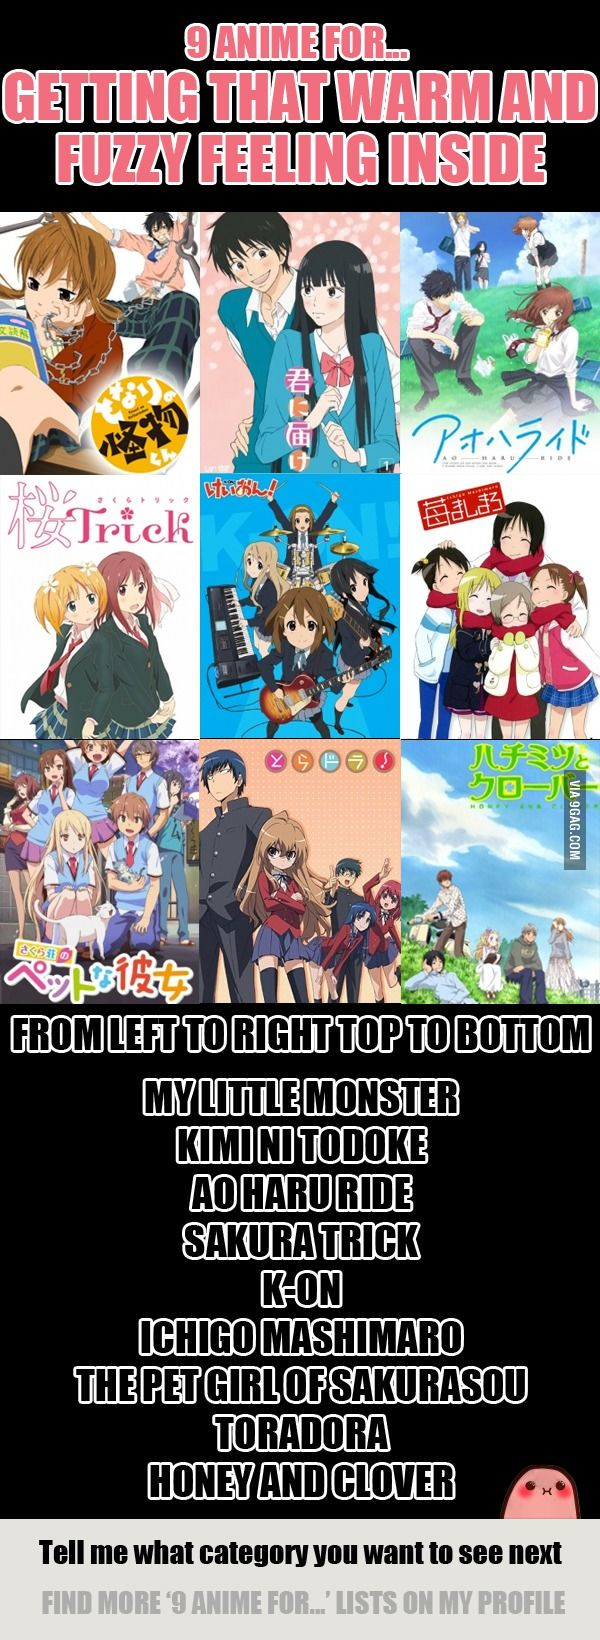 9 Anime For Getting That Warm and Fuzzy Feeling Inside - 9GAG